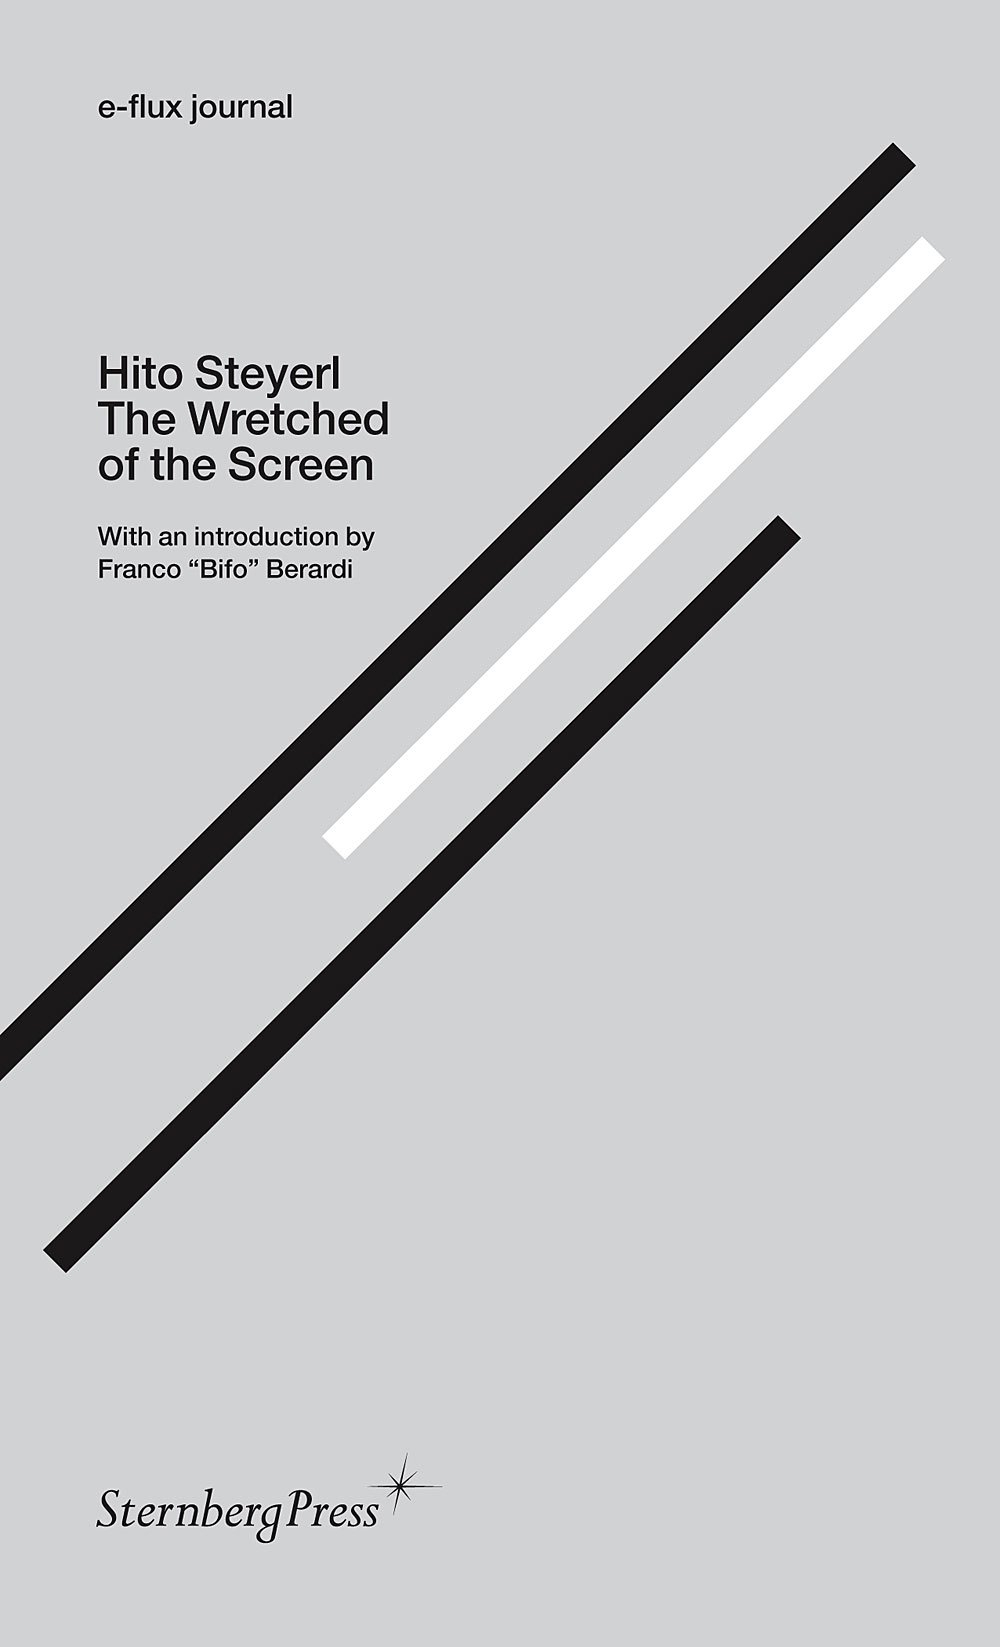 Buy Hito Steyerl - the Wretched of the Screen